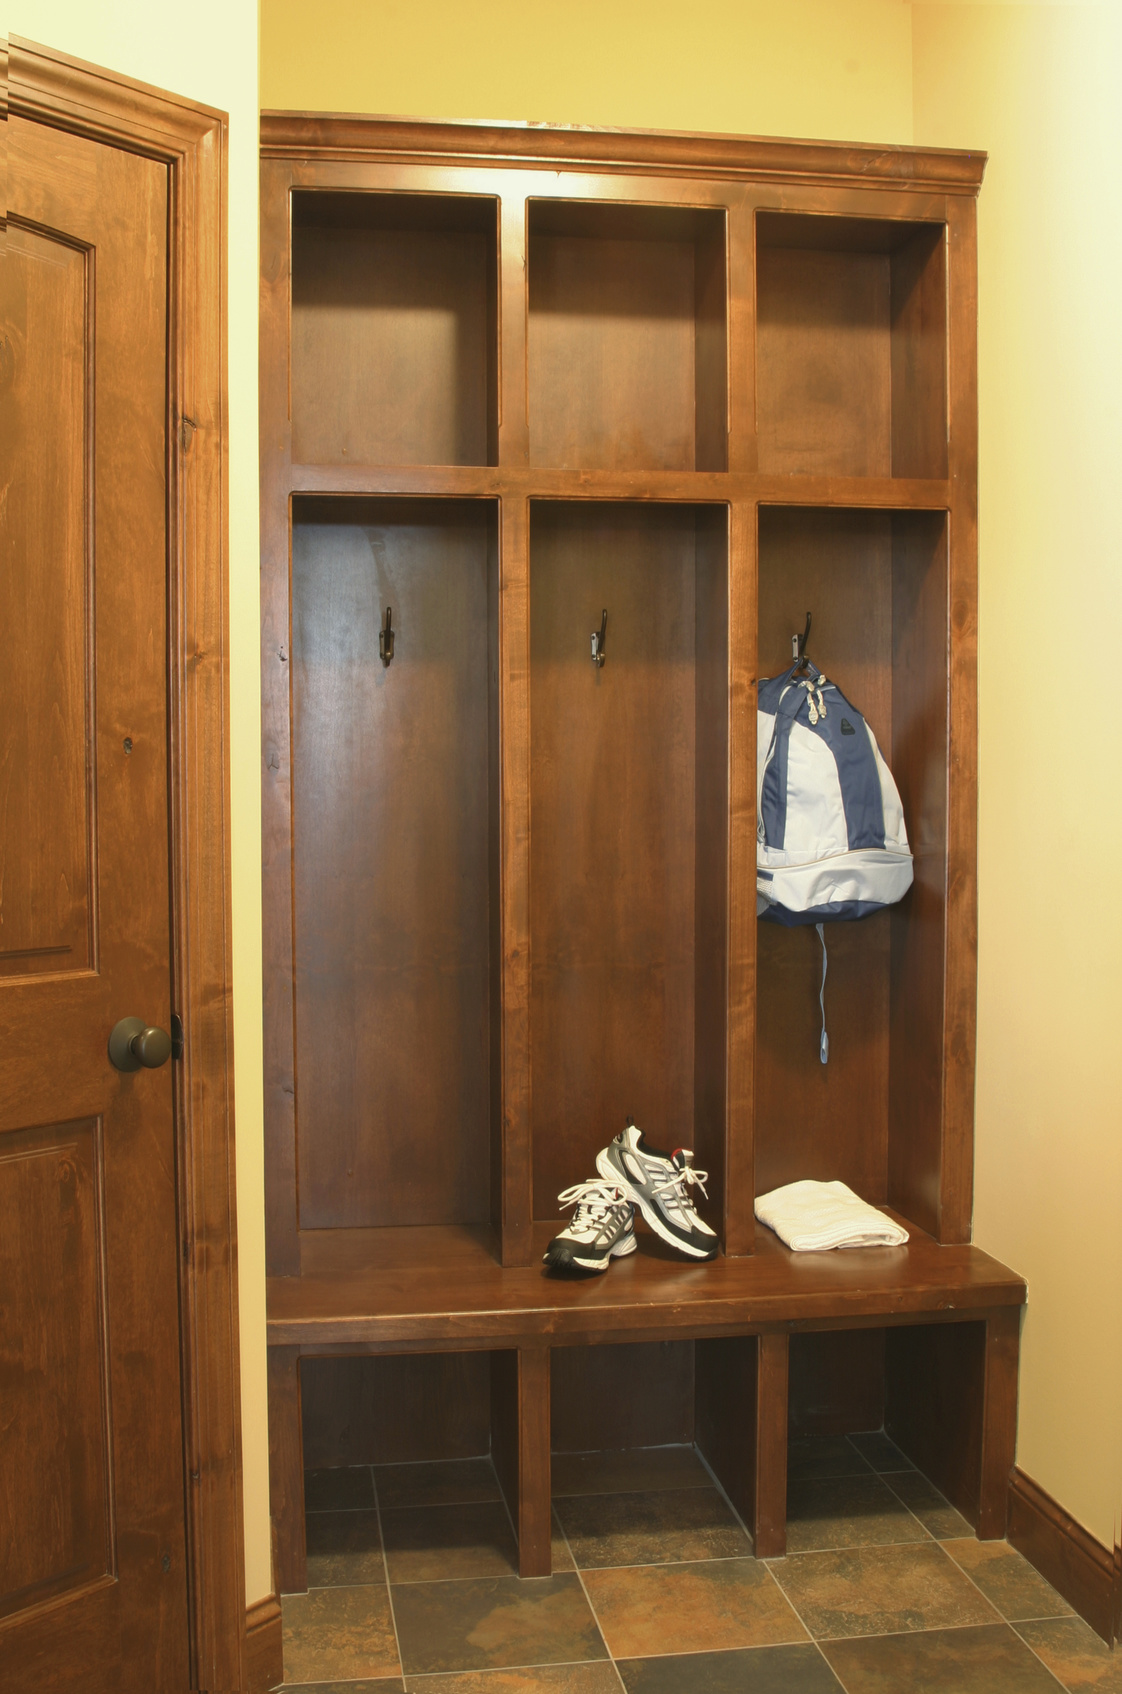 Estate home interior mud room lockers